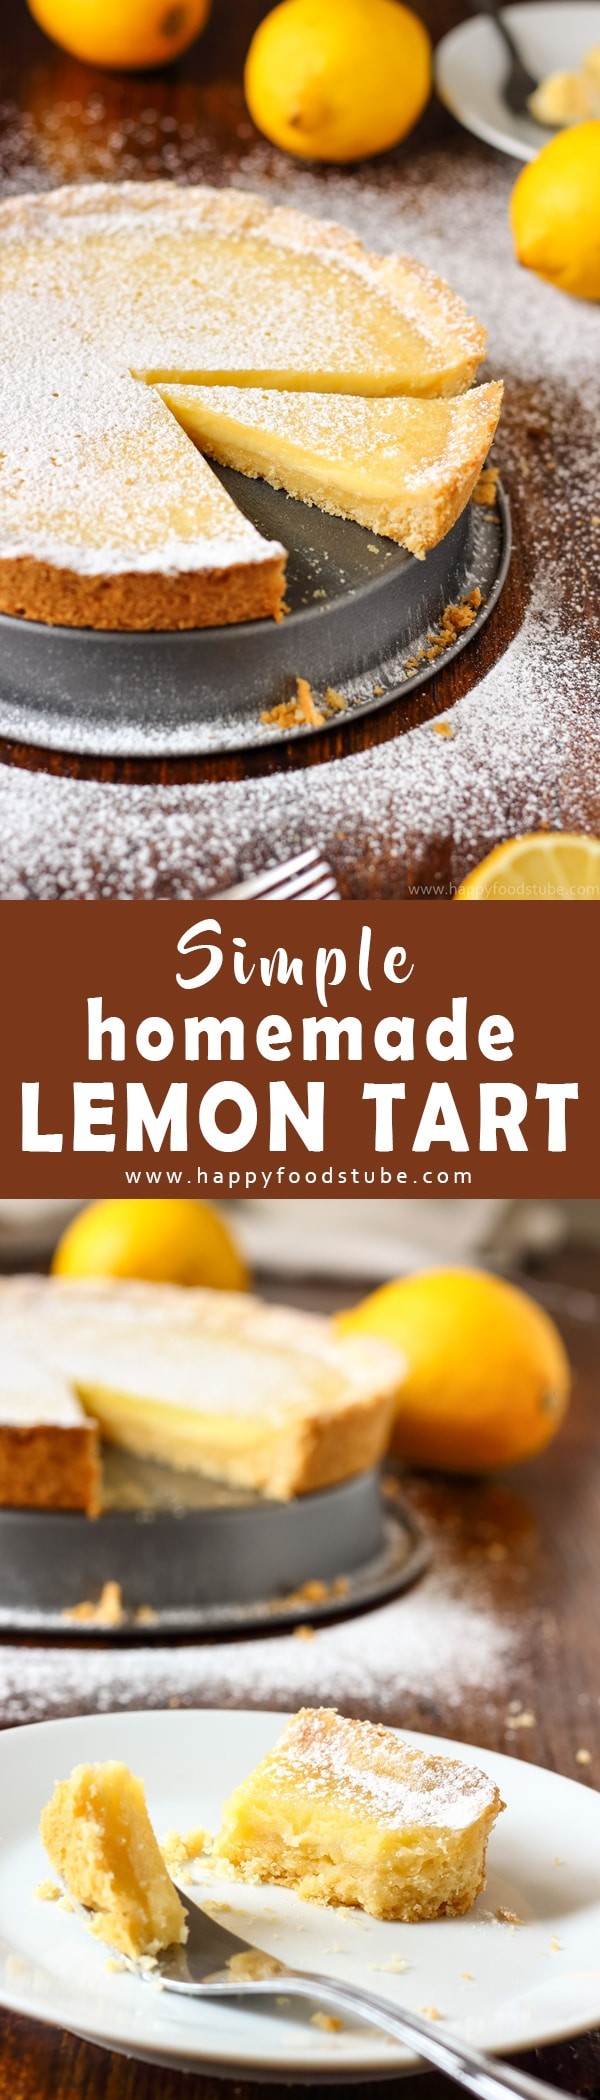 Simple Homemade Lemon Tart is a great citrus dessert made from scratch and using basic ingredients. It's a perfect baking project for kids as well. Easy to make desserts. #lemontart #easyrecipes #madefromscratch #baking #tart #recipe #dessert #citrus #homemade